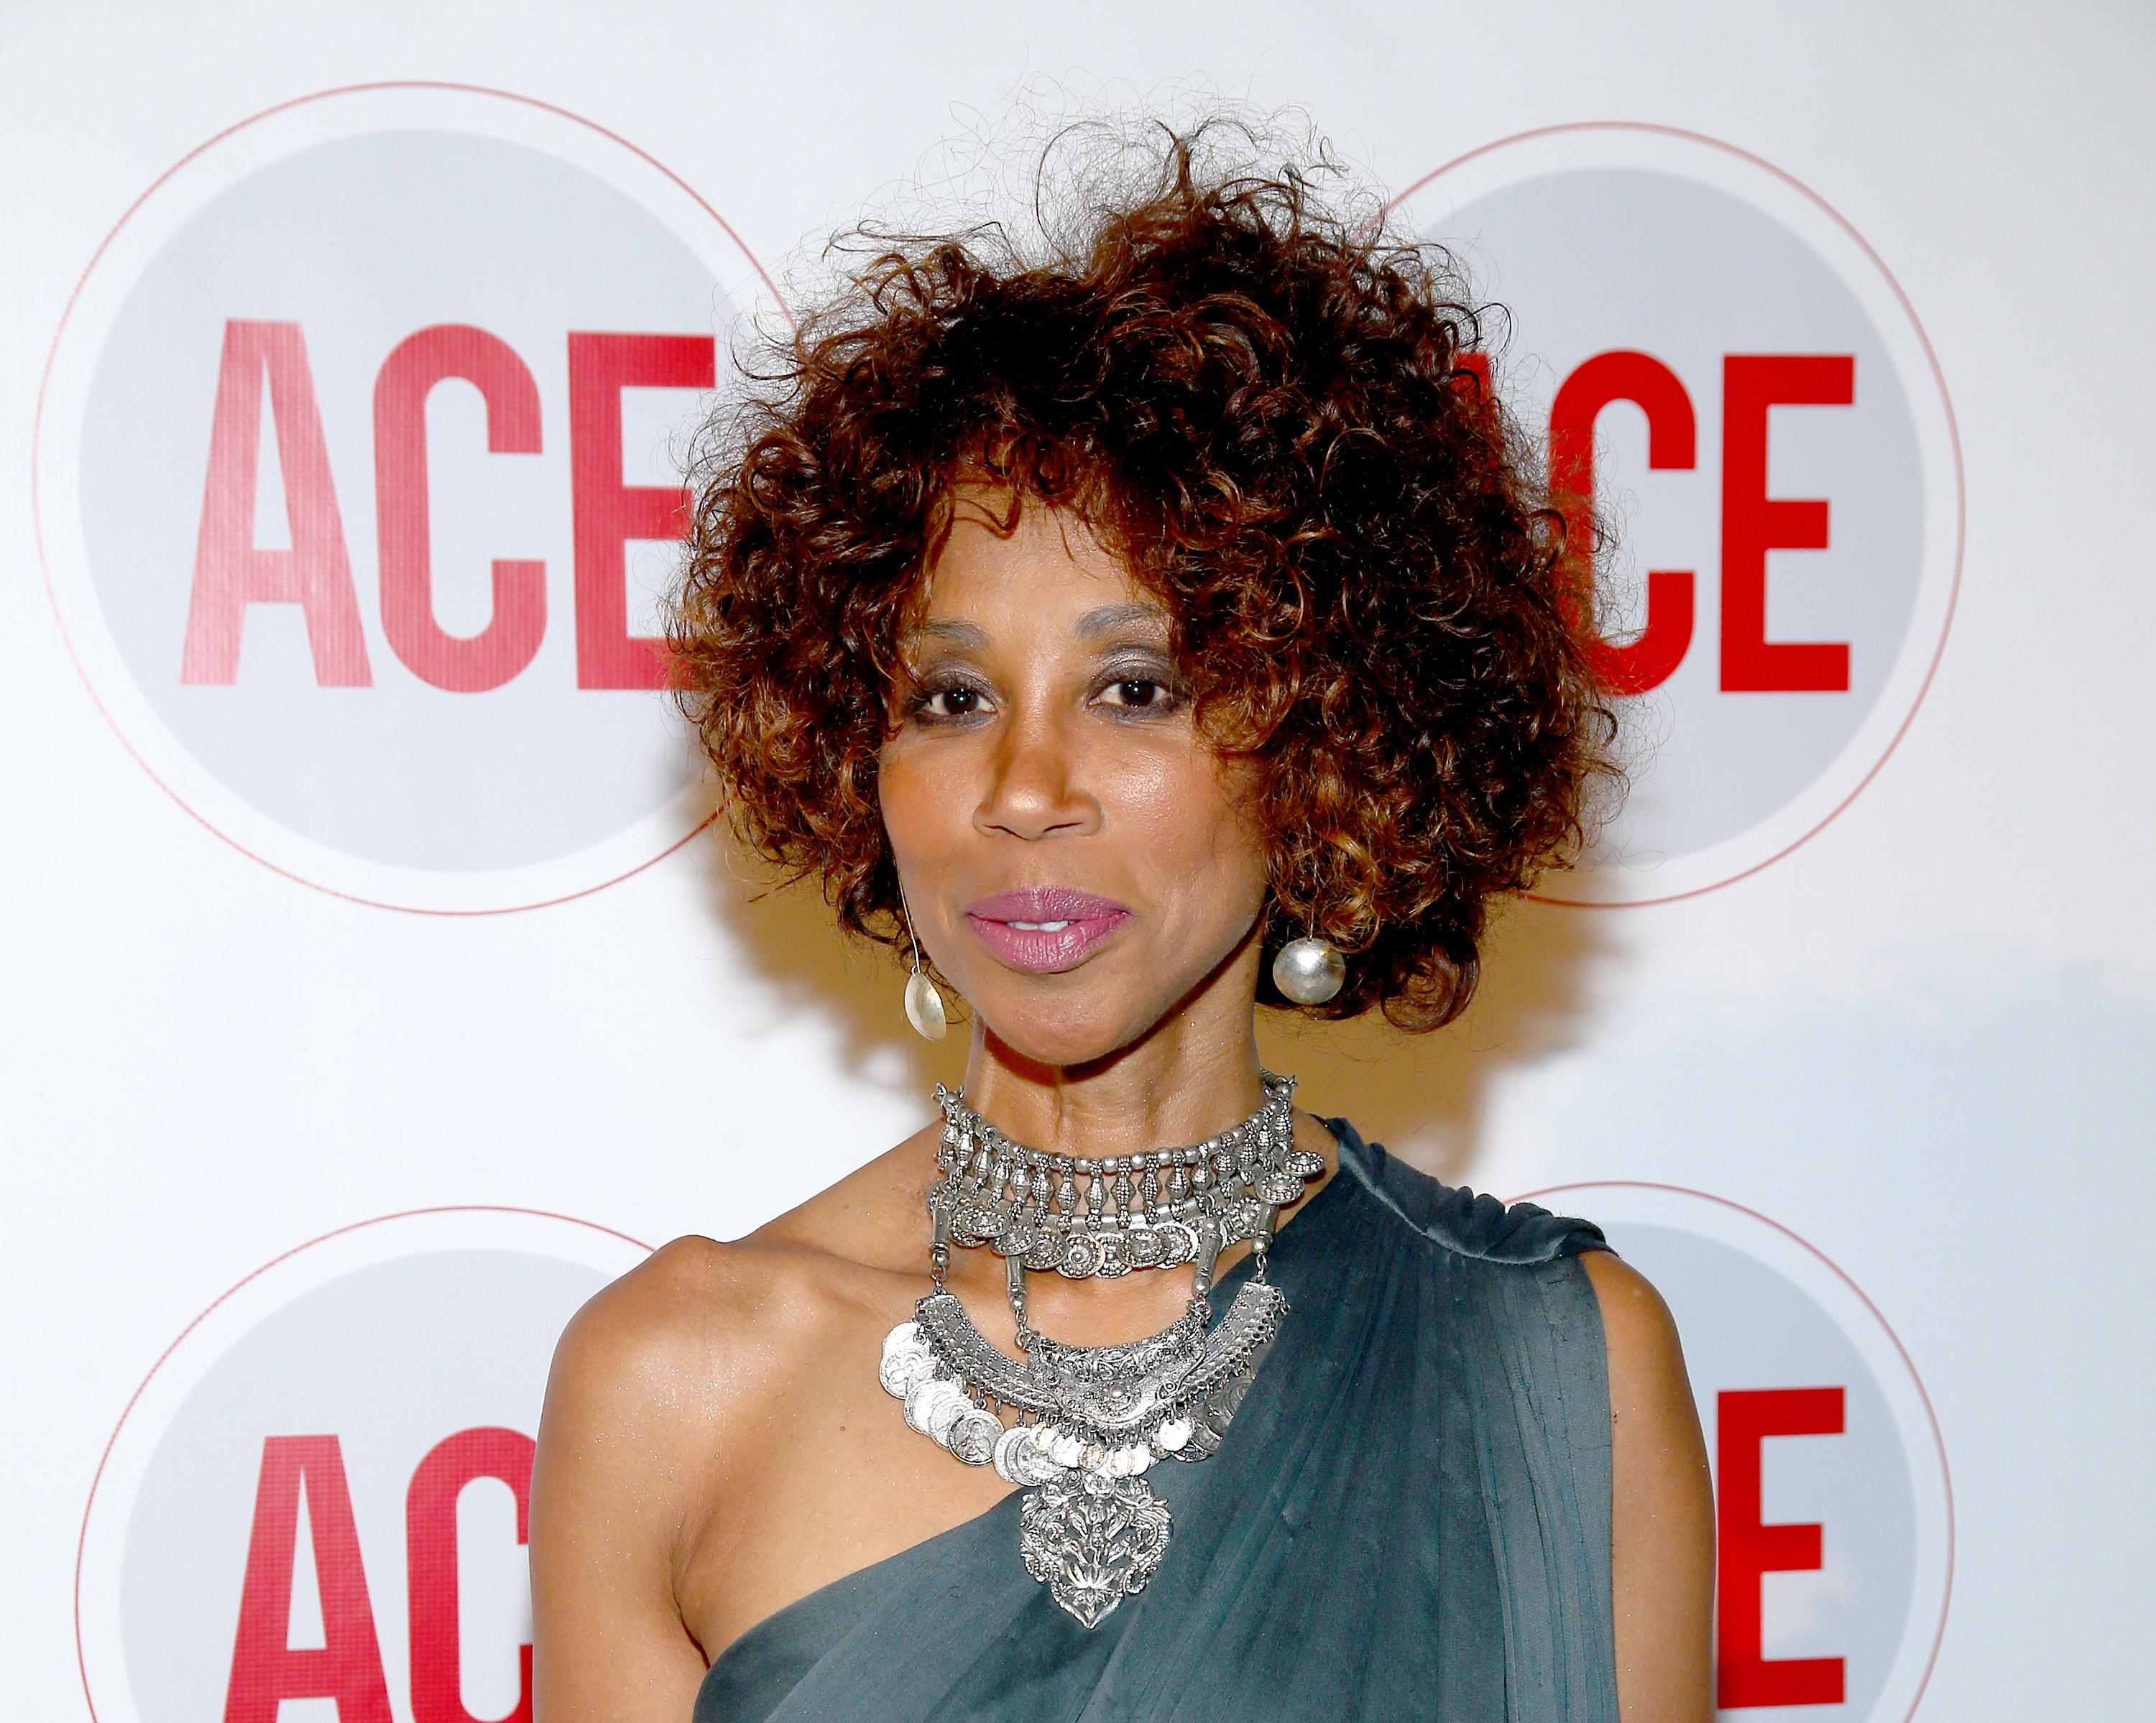 Trisha Goddard attends the 2017 ACE Gala at Capitale on May 23, 2017 in New York City. (Photo by Paul Zimmerman/WireImage)